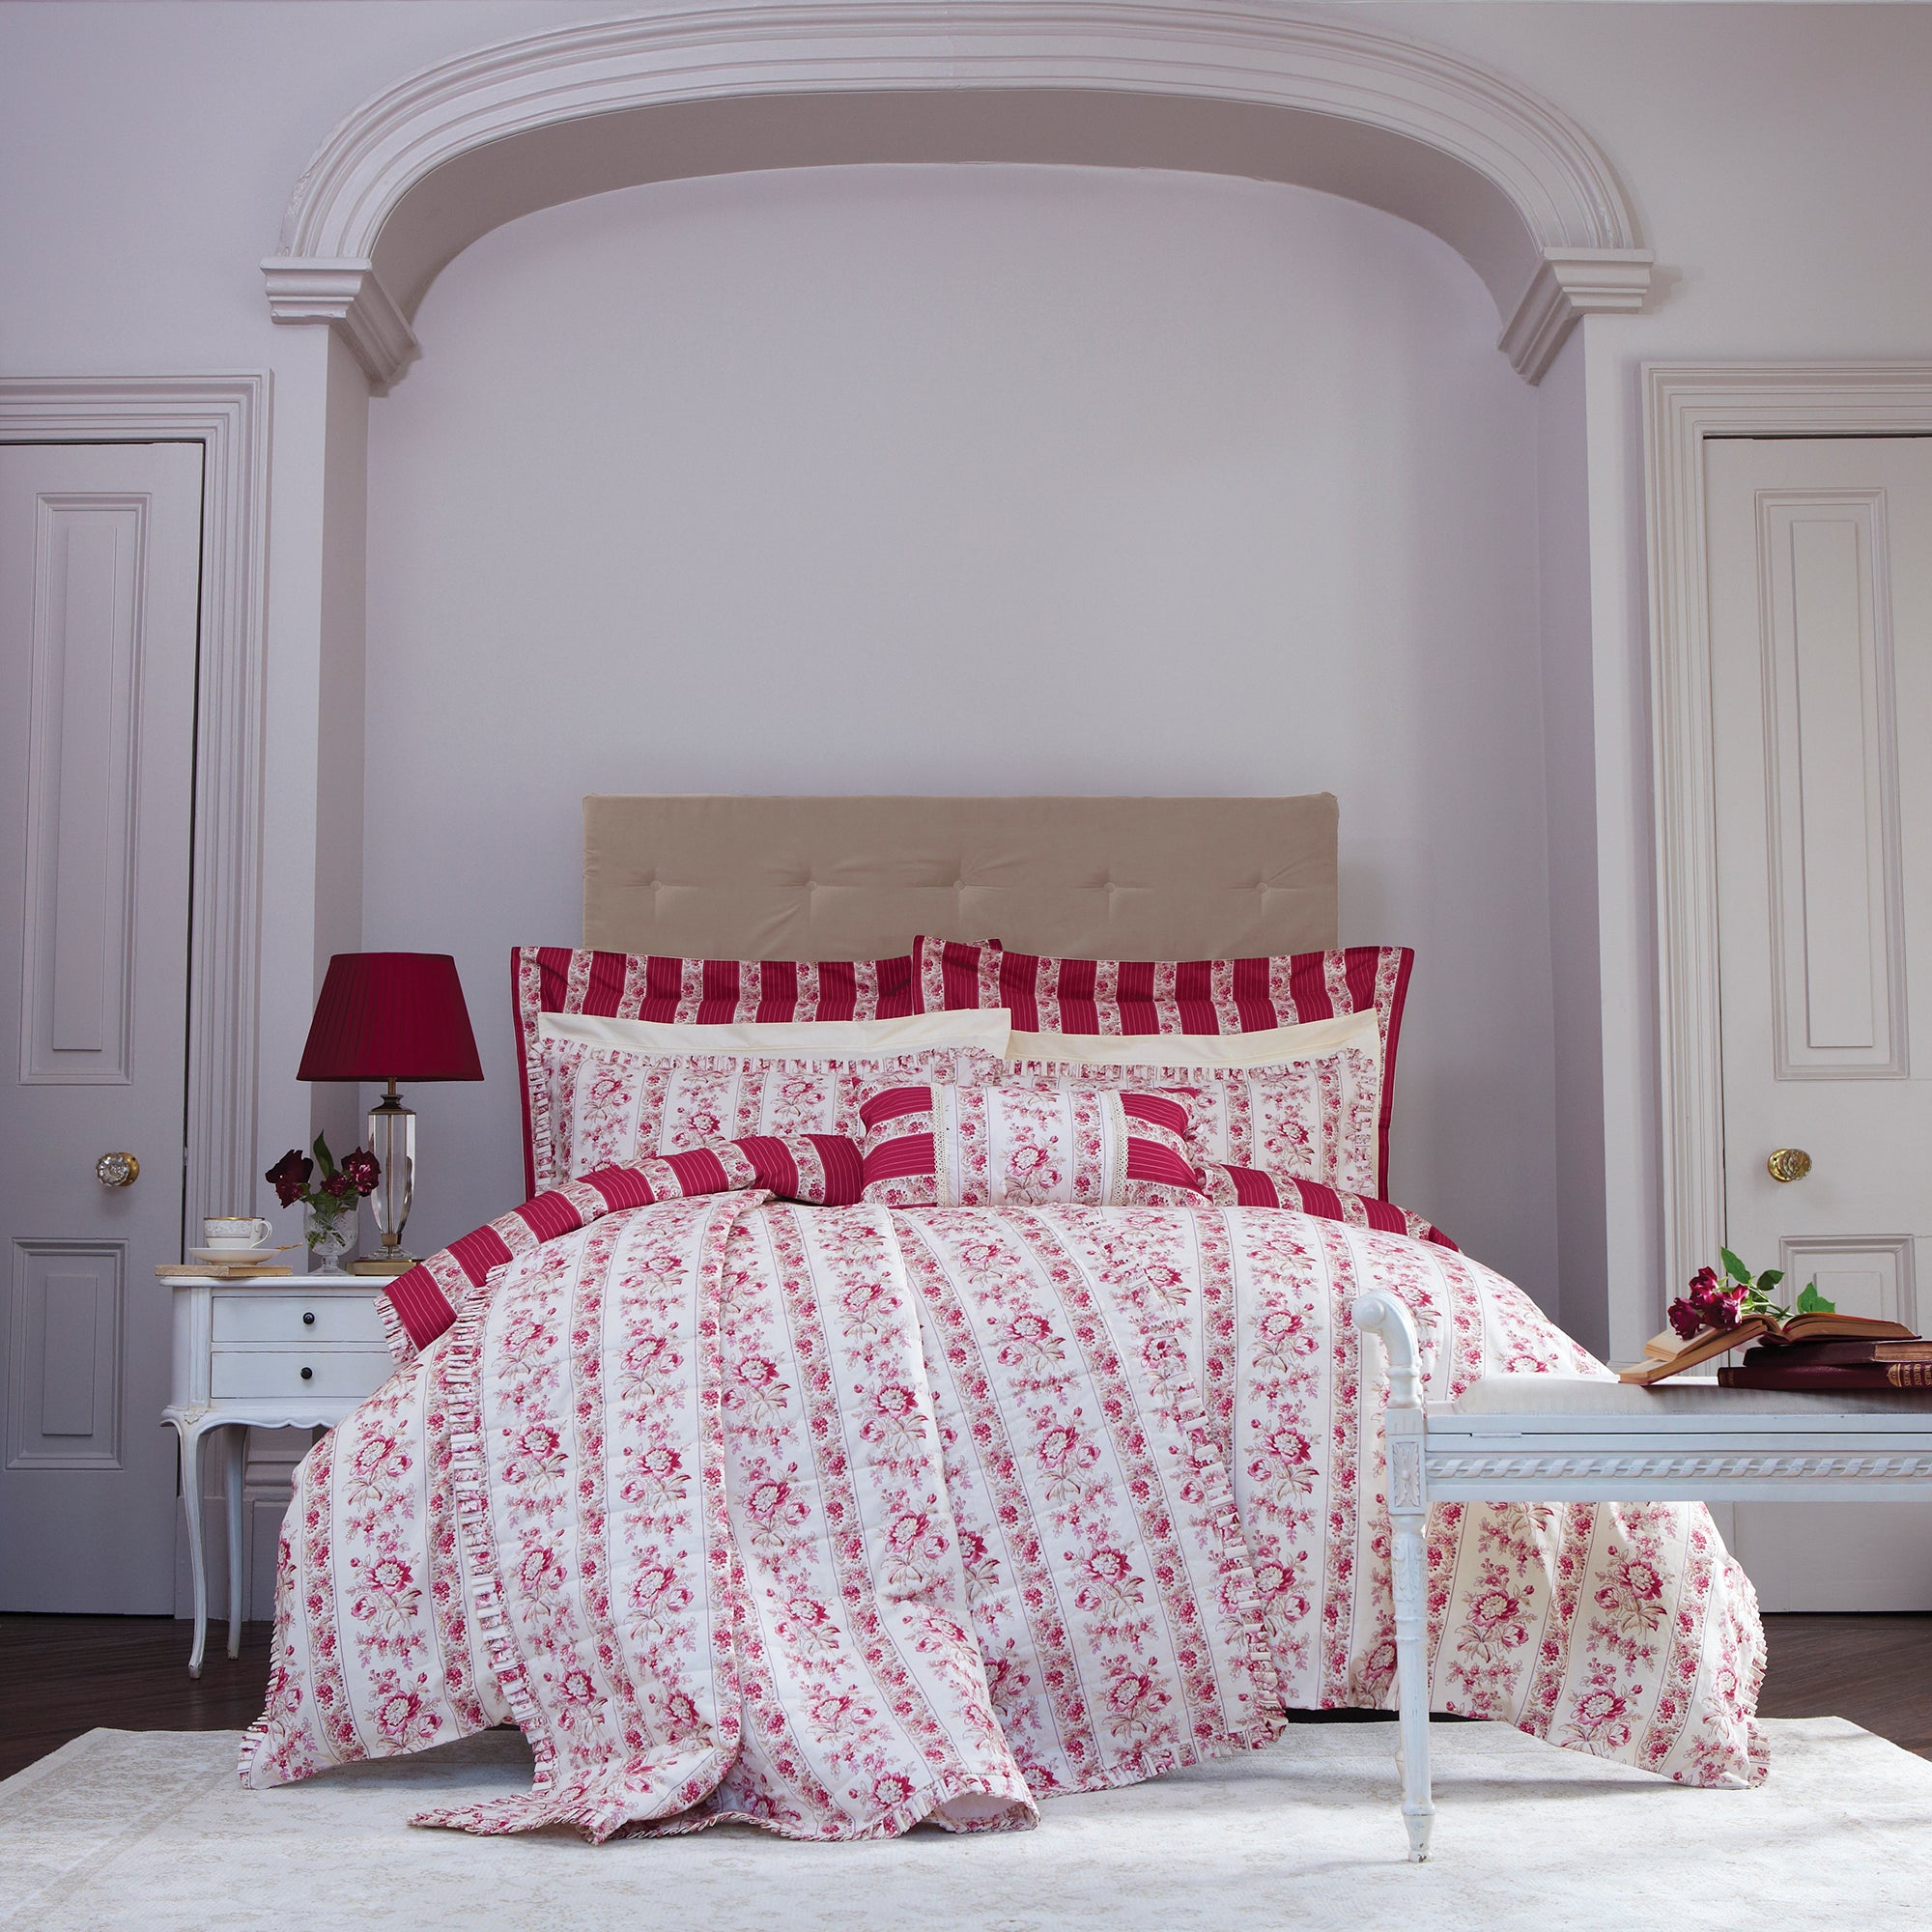 Dorma Red Martha Collection Duvet Cover